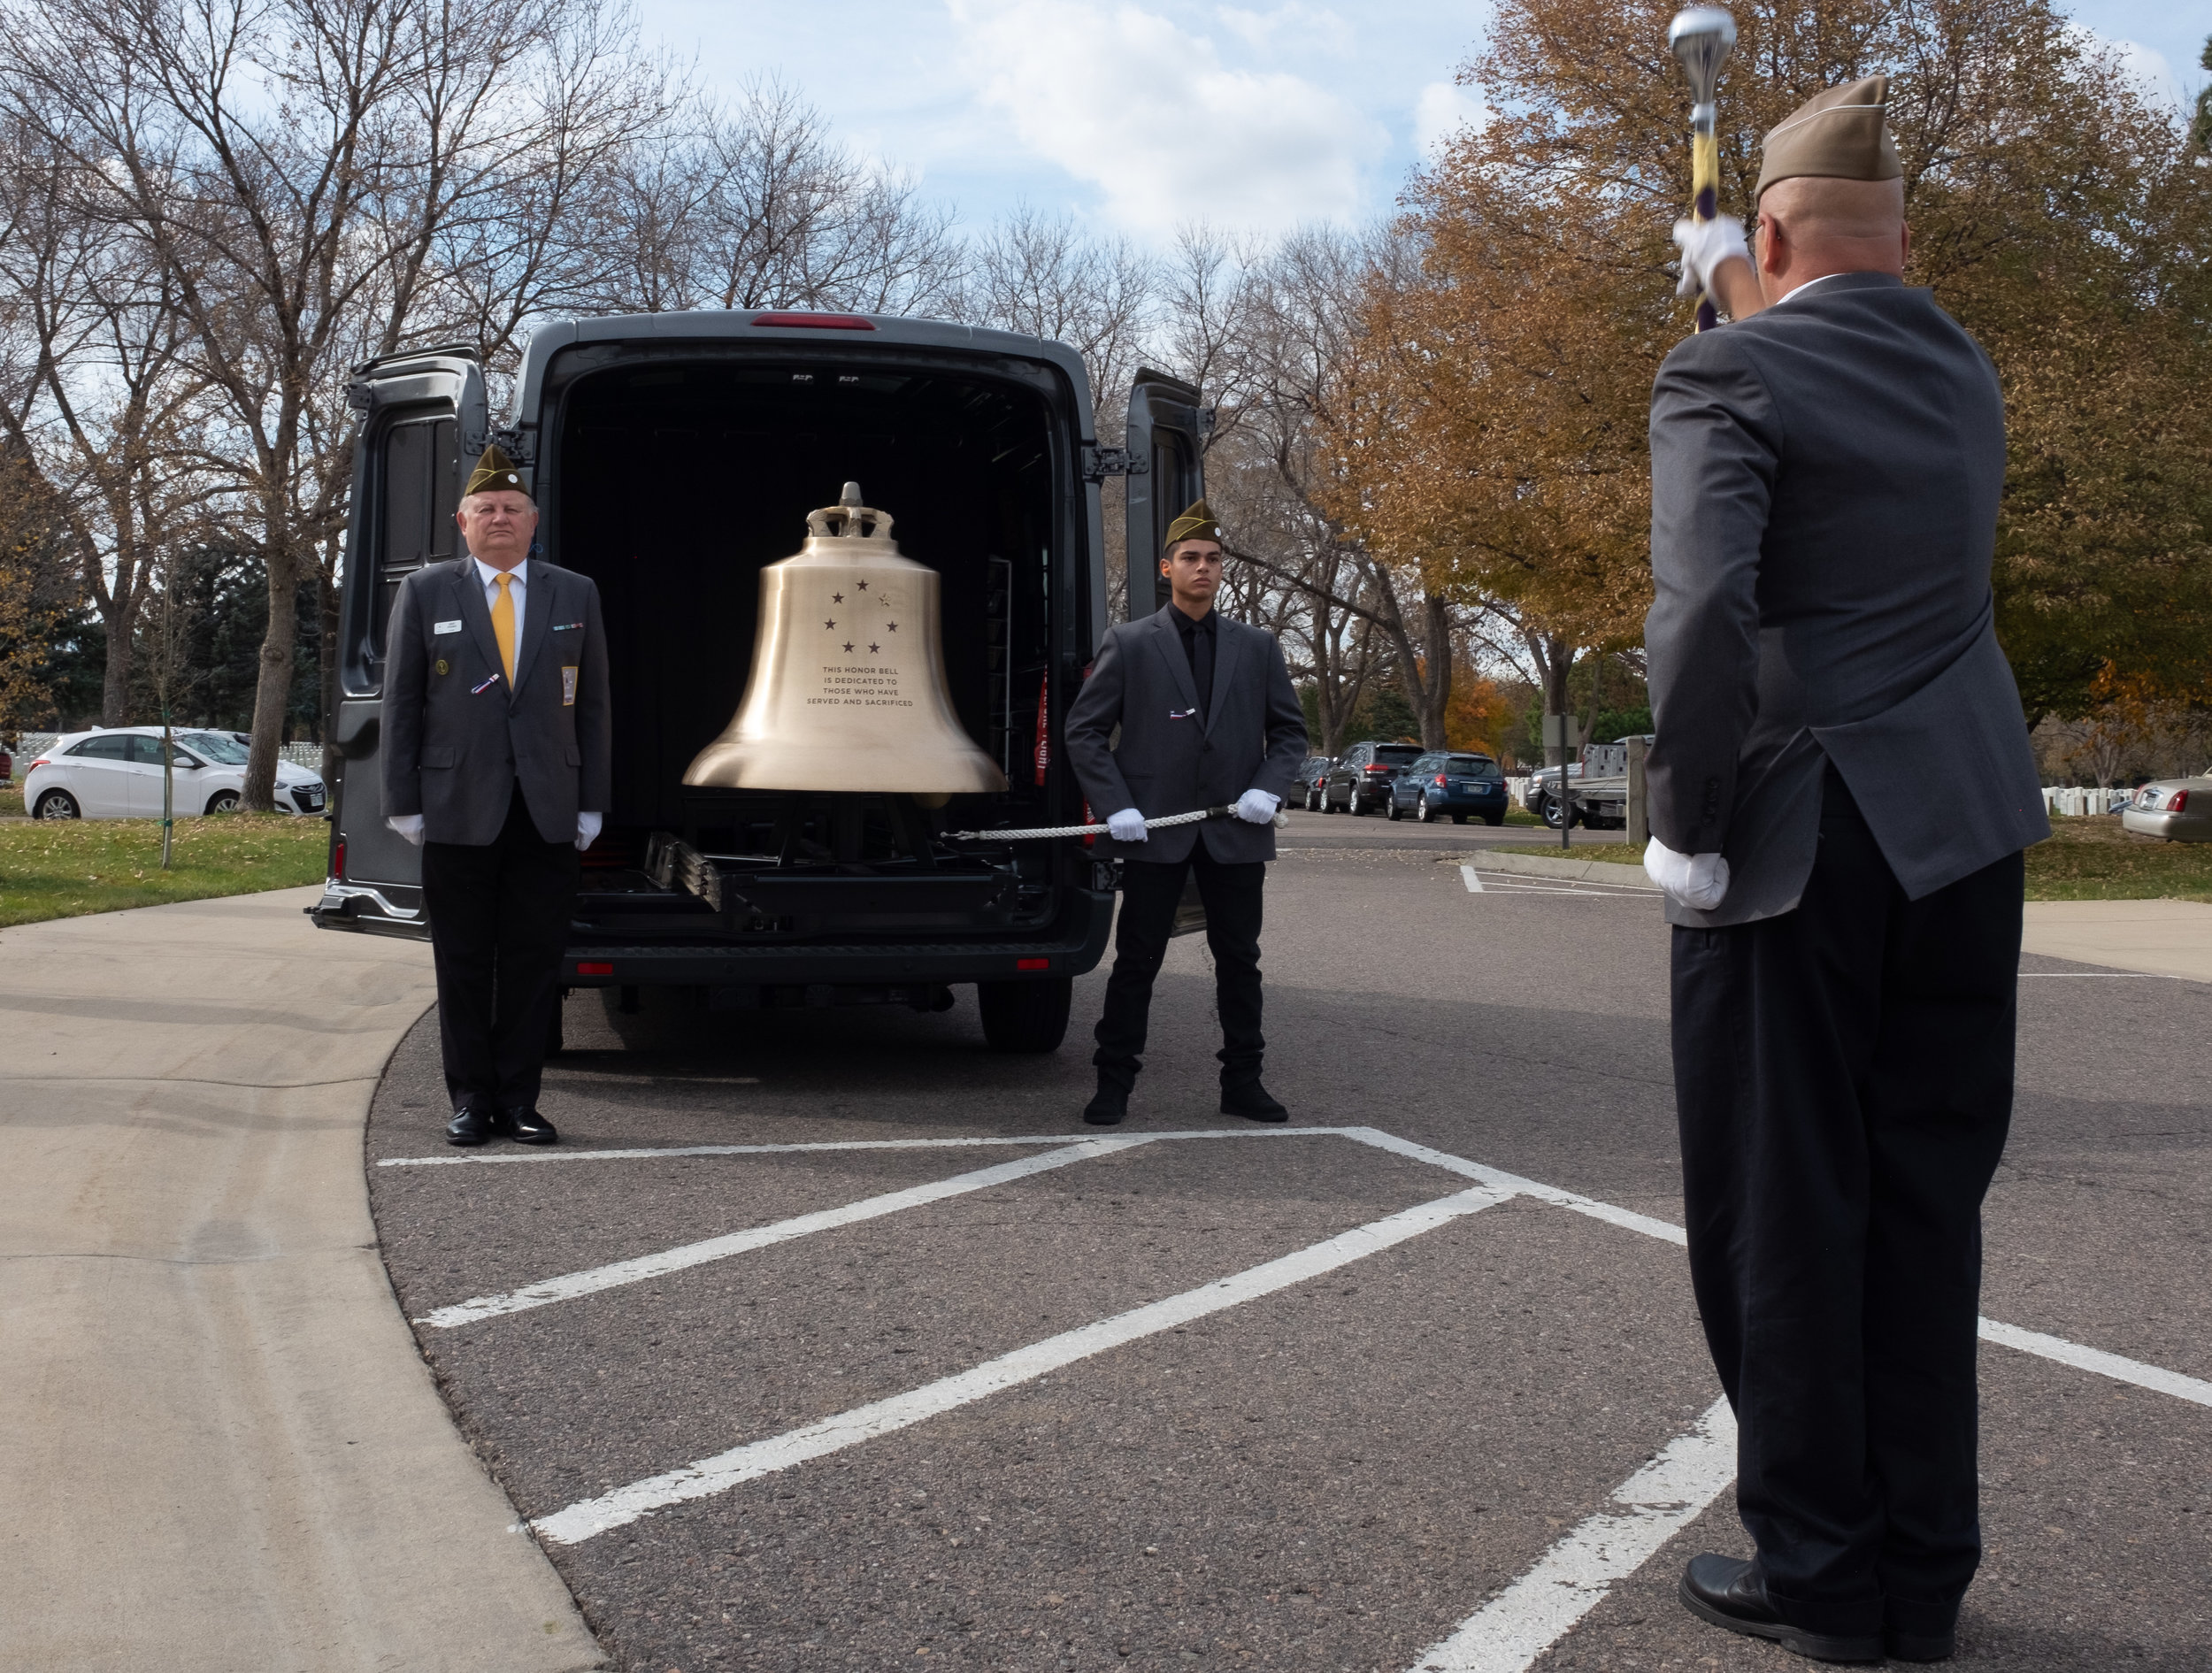 The Honor Bell being tolled at a service for unclaimed remains at Fort Logan National Cemetery in Denver, Colorado.